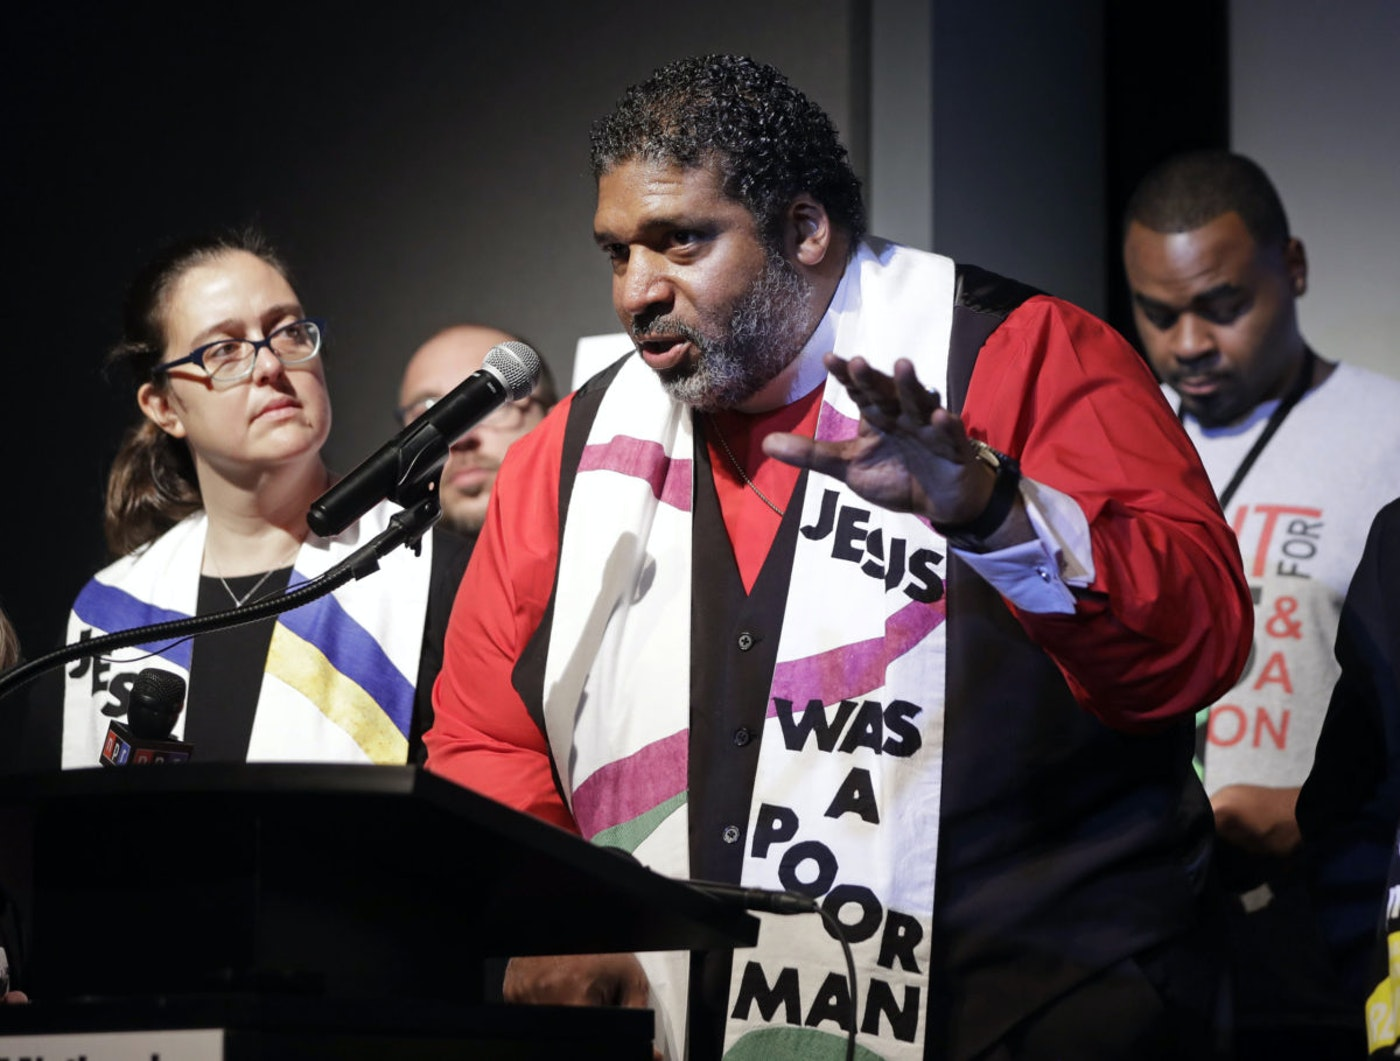 In this April 2, 2018 file photo,  Rev. Dr. William J. Barber II, center, and Rev. Dr. Liz Theoharis, left, co-chairs of the Poor People's Campaign, speak at the National Civil Rights Museum in Memphis, Tenn. Barber led a town hall on the US Senate race Tuesday. (AP Photo/Mark Humphrey)